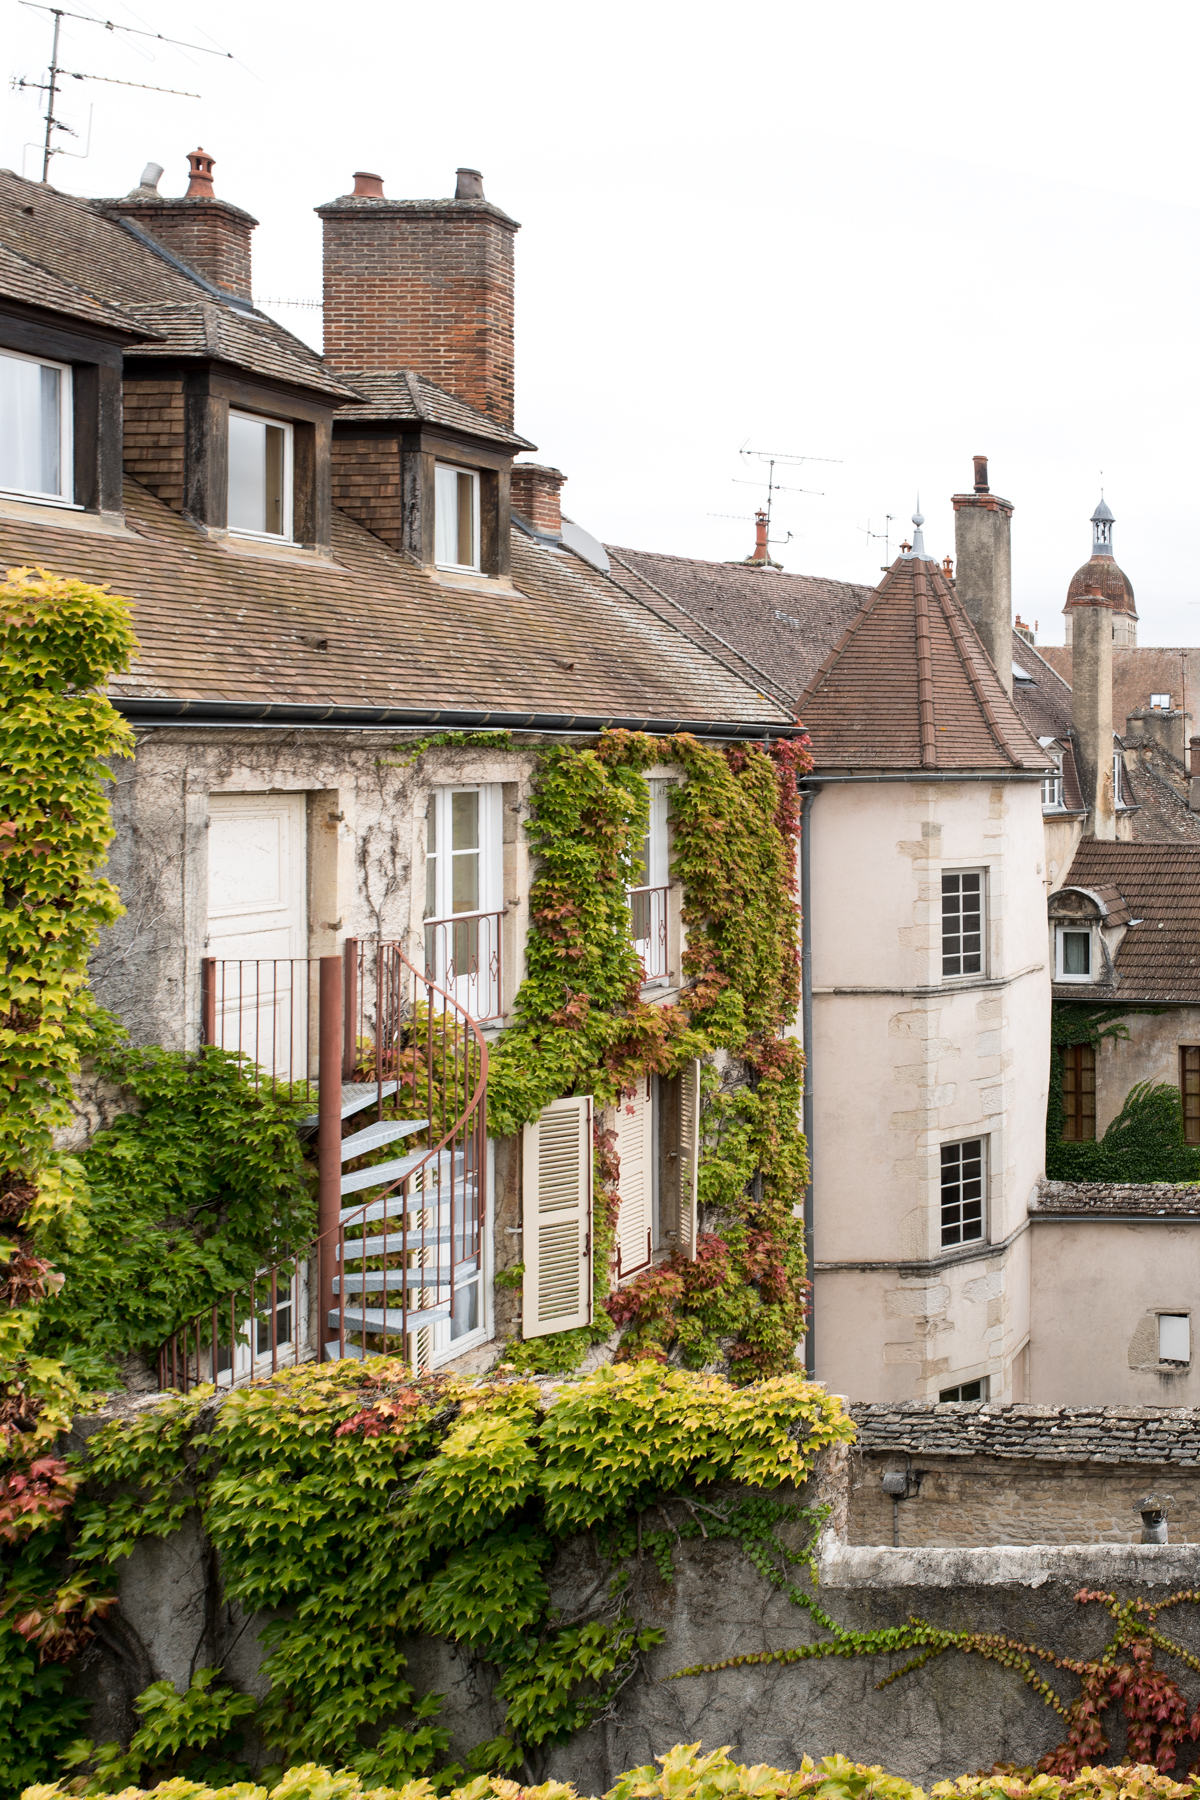 Stacie Flinner Things to Do in Burgundy France-72.jpg